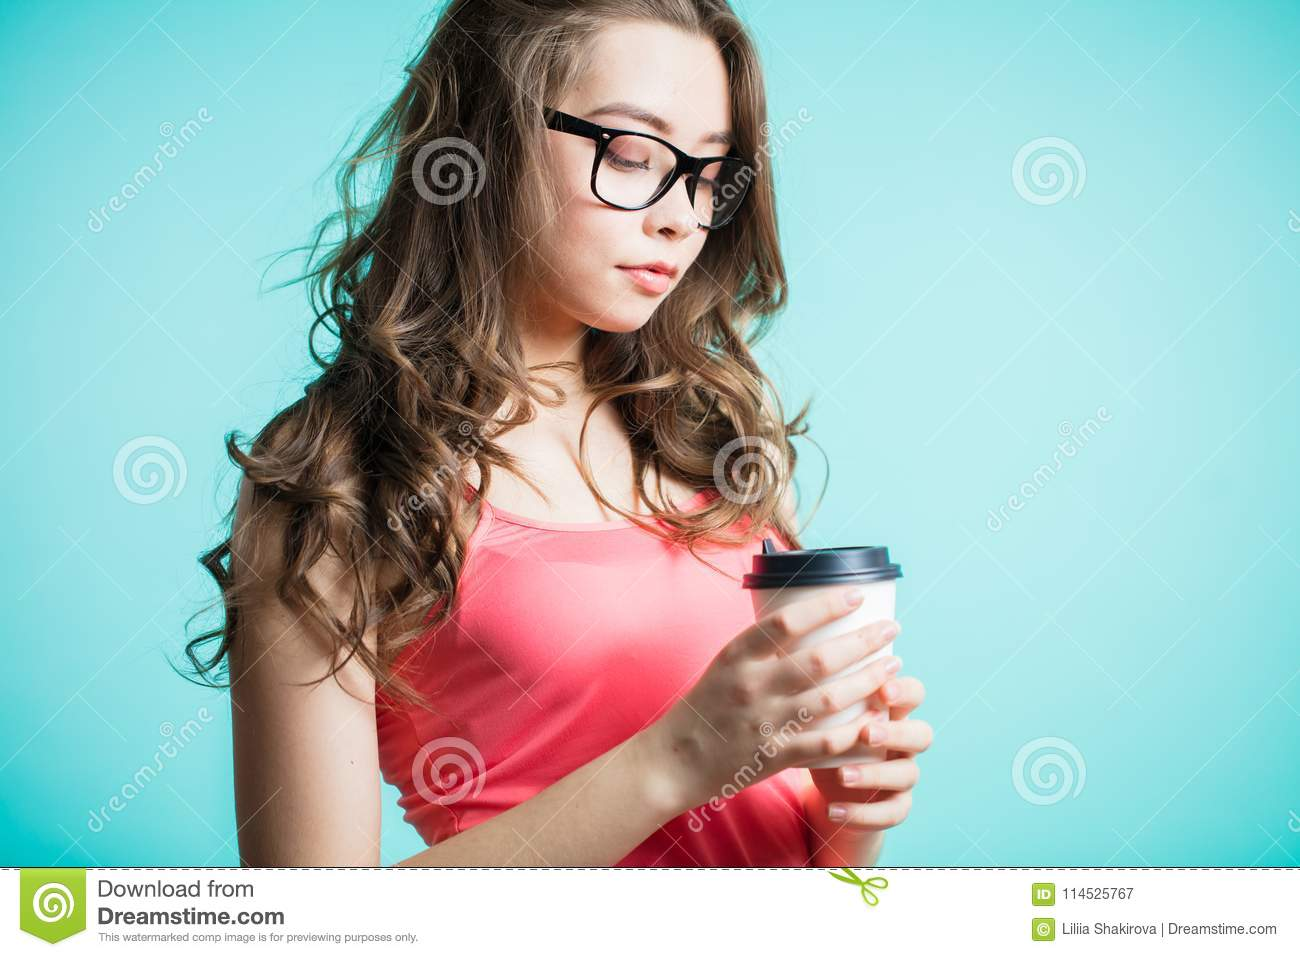 Beautiful young woman drinking coffee. Young brunette woman holding a paper Cup on her hand on a blue background